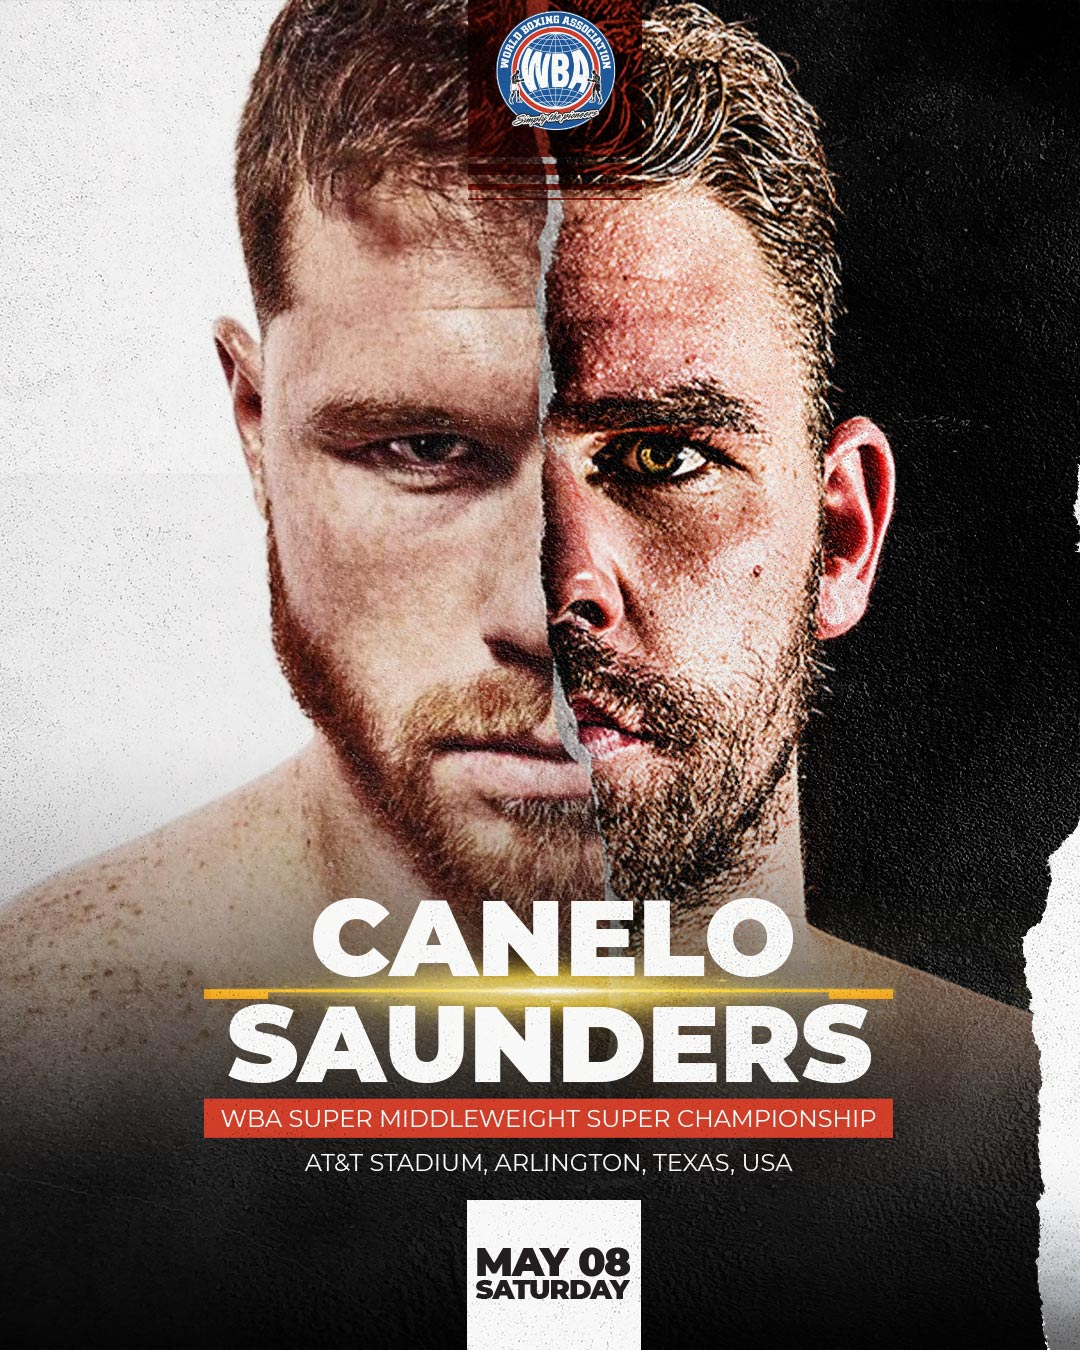 Canelo returns to the ring against Saunders to celebrate Cinco de Mayo